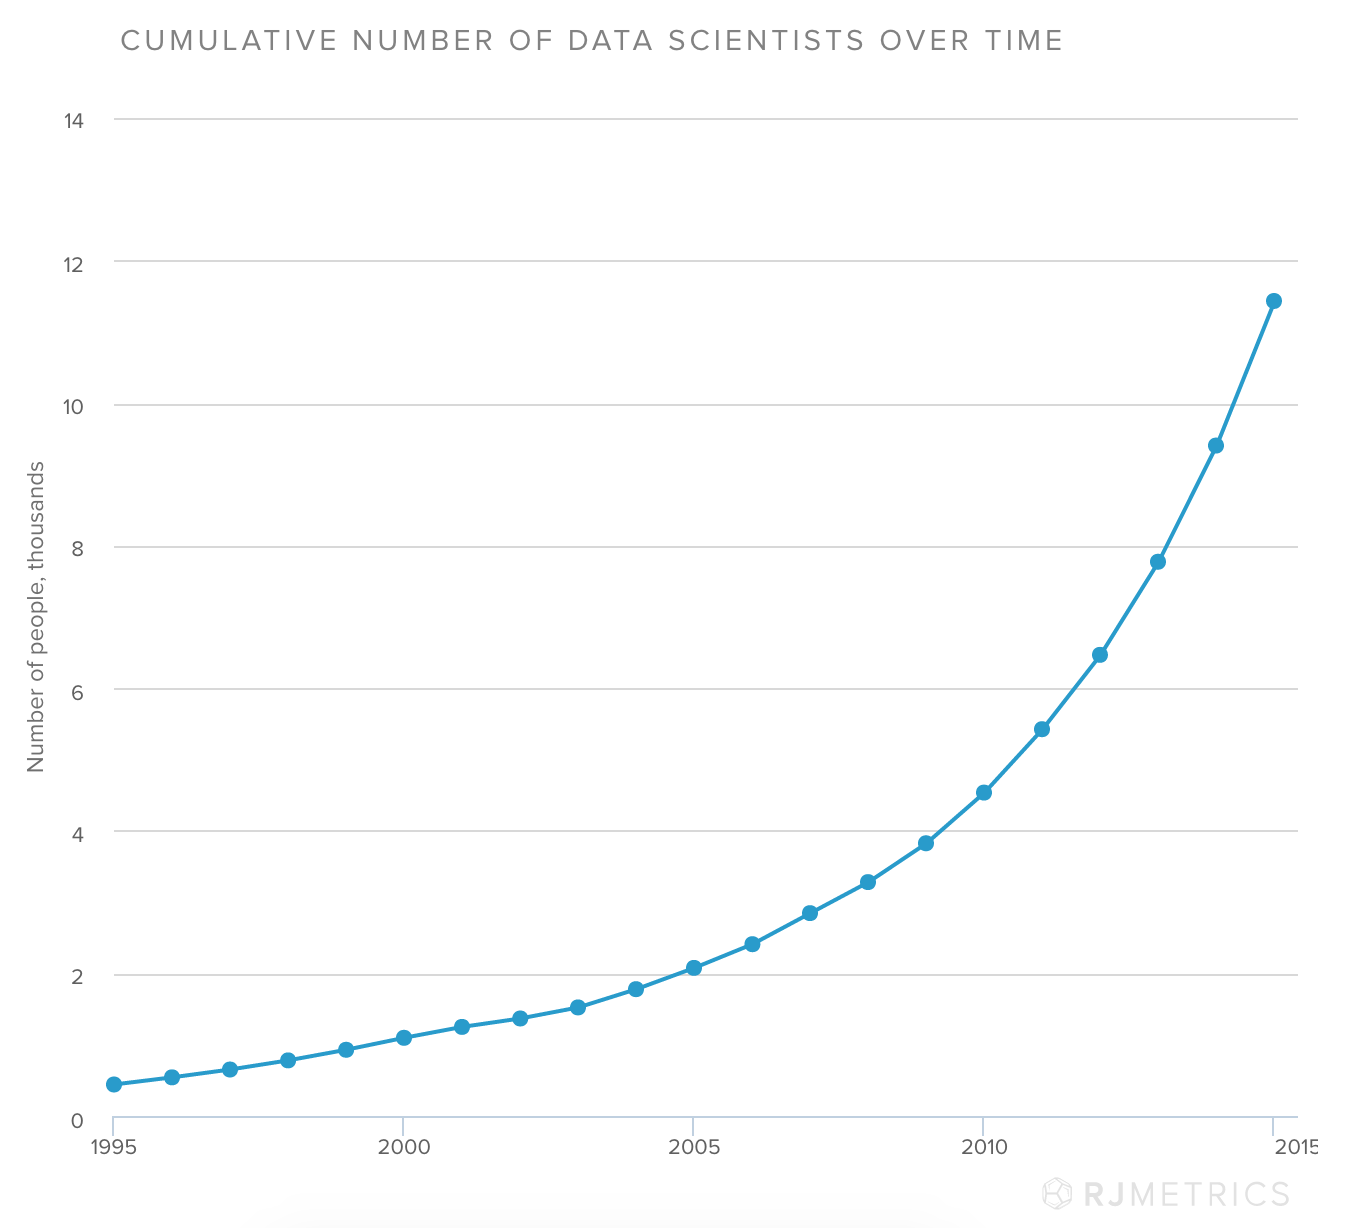 Cumulative number of data scientists over time